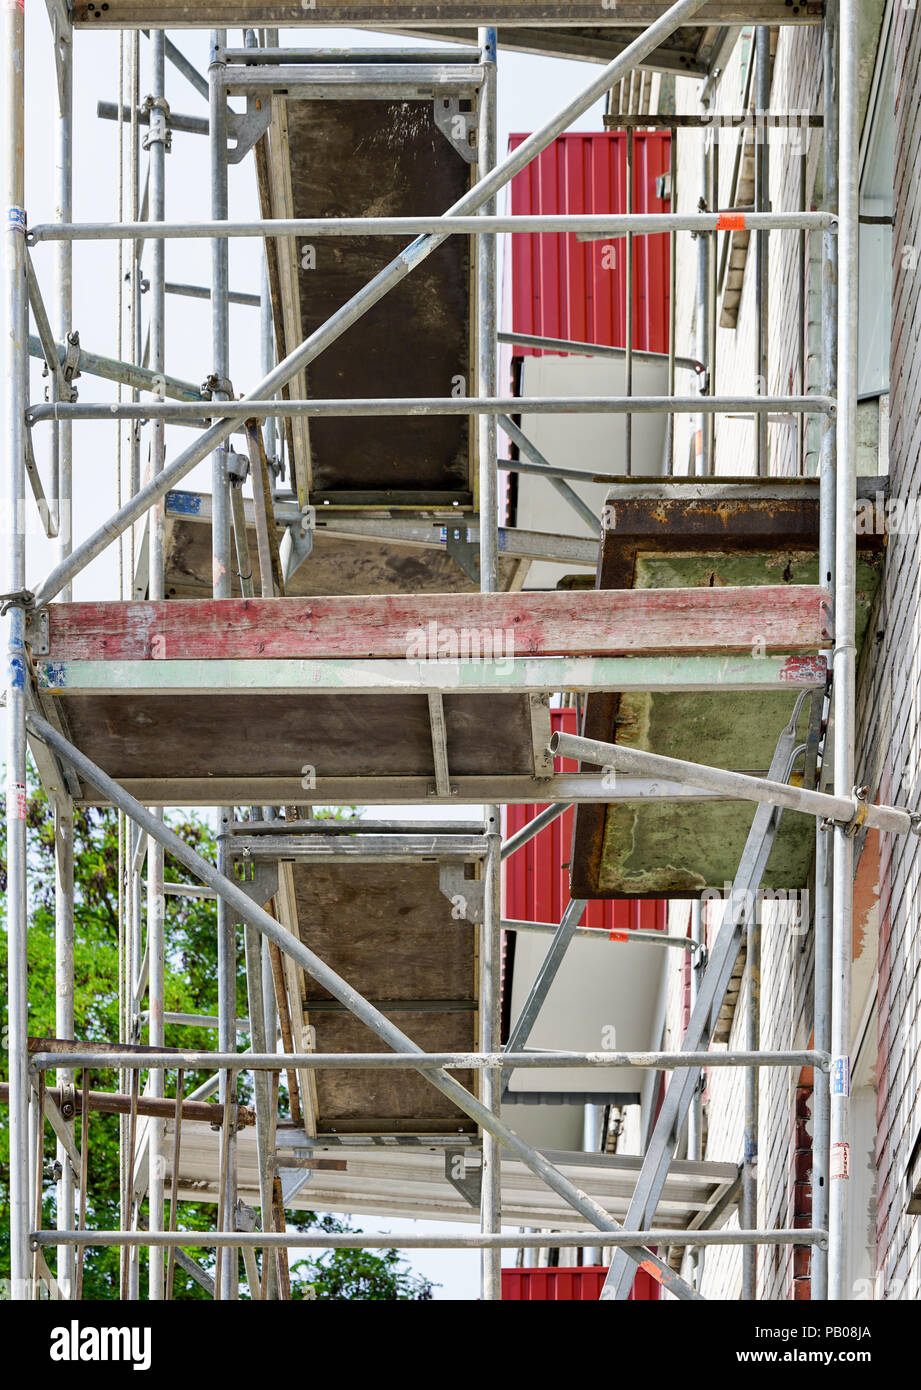 scaffolding, instalatrion of the thermal insulation - Stock Image